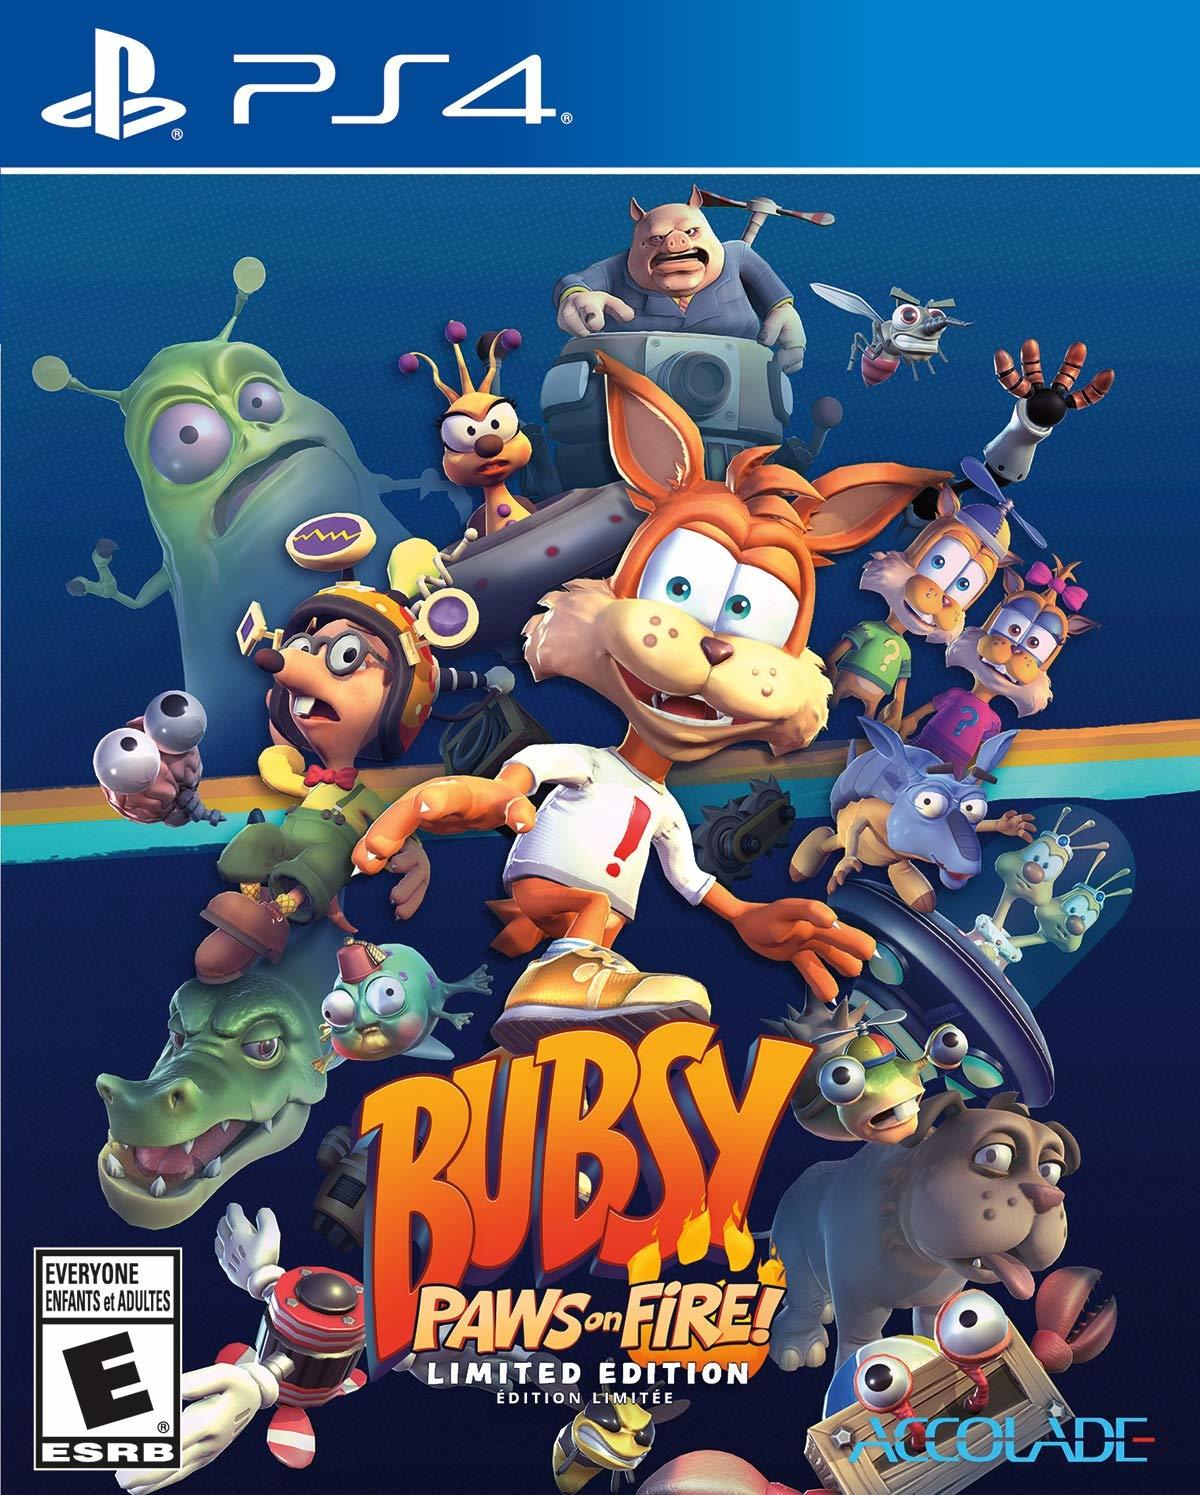 Bubsy Paws on Fire! Limited Edition - PS4